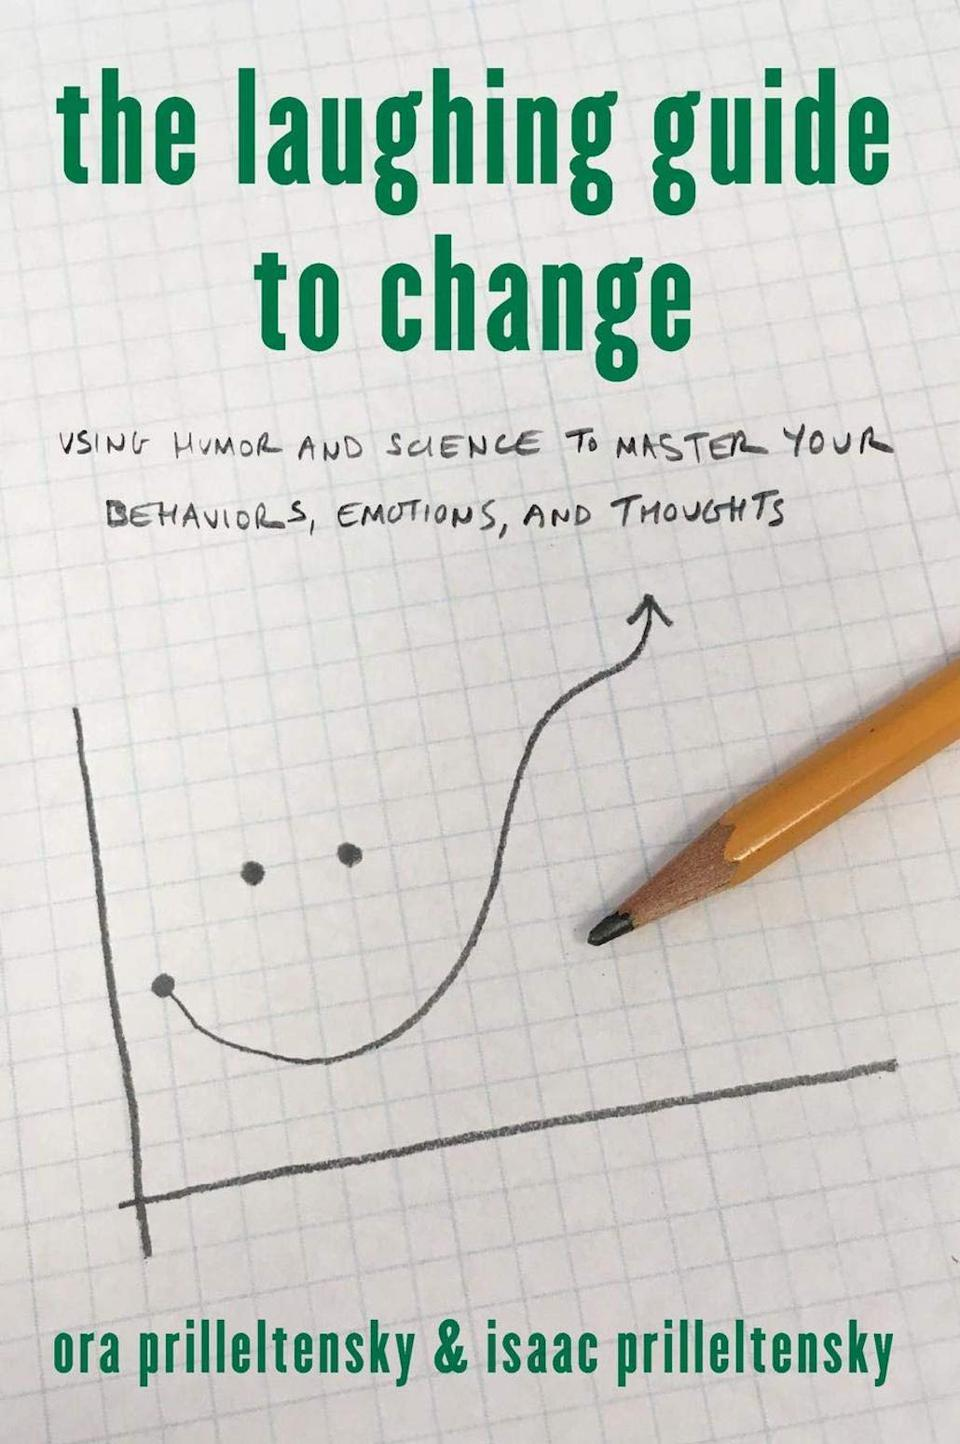 The Laughing Guide to Change: Using Humor and Science to Master Your Behaviors, Emotions, and Thoughts by Ora Prilleltensky and Isaac Prilleltensky